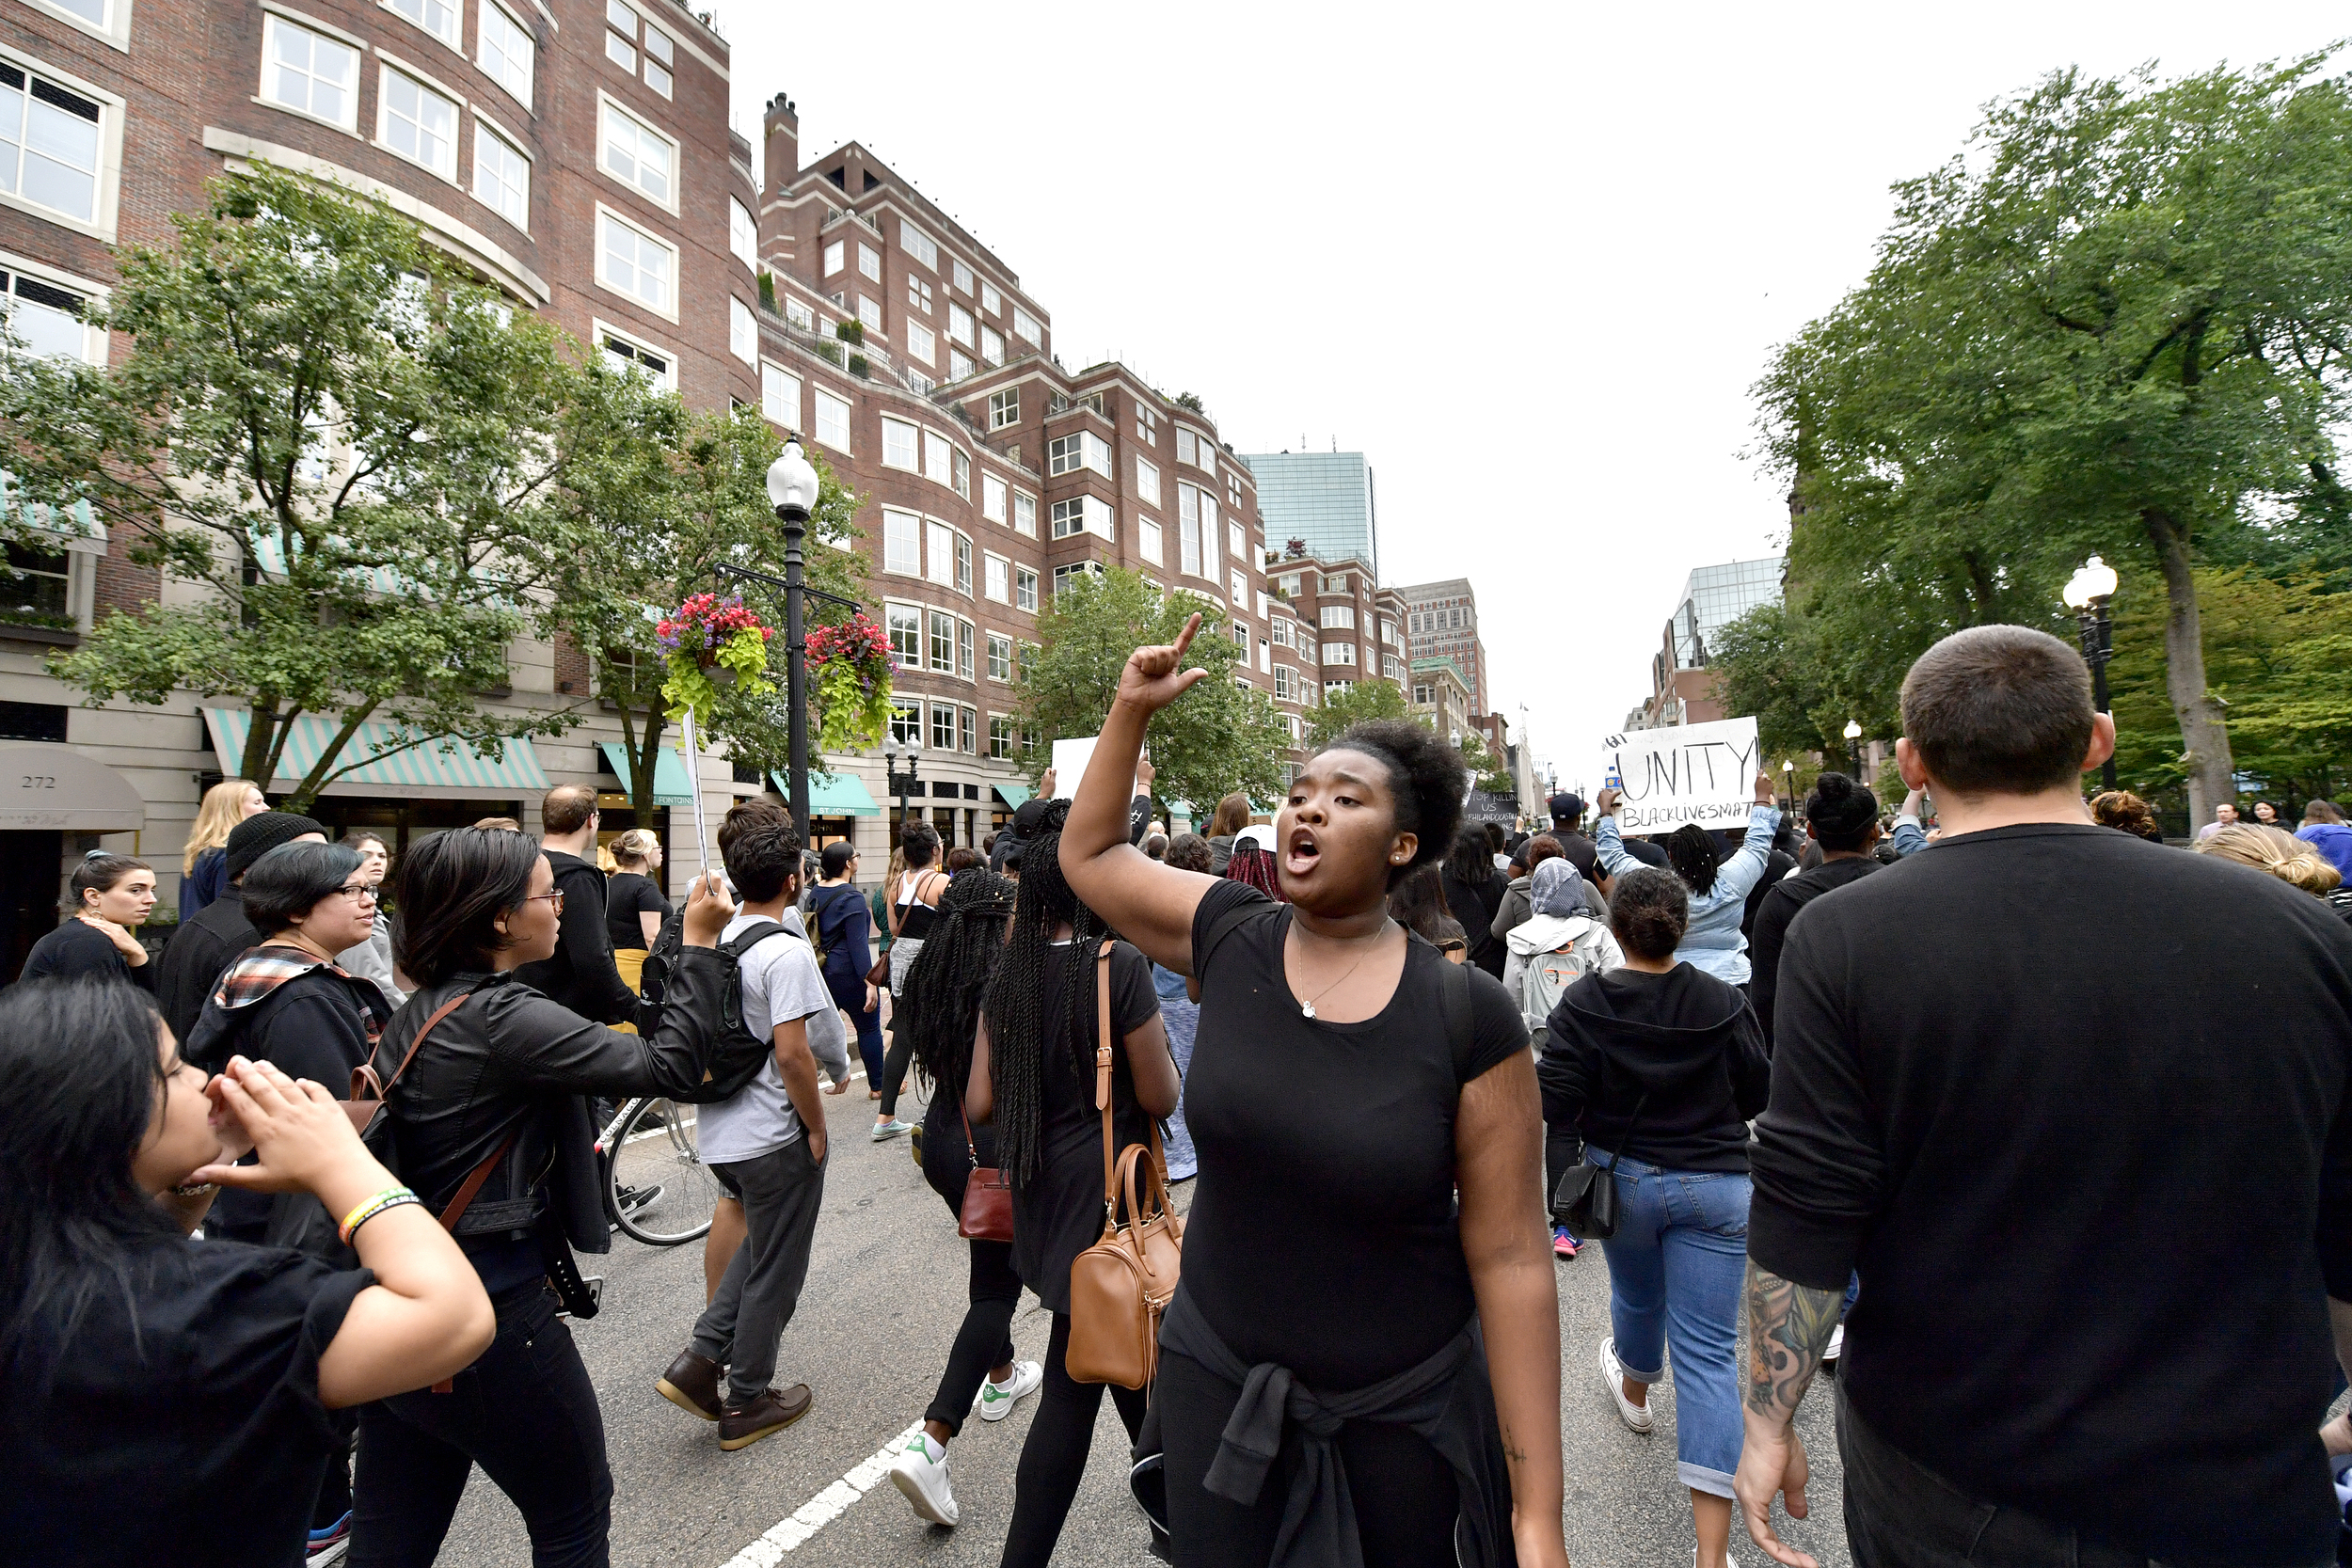 BOSTON, MA, July 10, 2016: Several hundred Black Lives Matter protestors gathered to march in downtown Boston from Downtown Crossing to Dudley Square on July 10, 2016. Boston Police guided them through the streets of Boston and the protest took place without incident. CREDIT: Paul Marotta